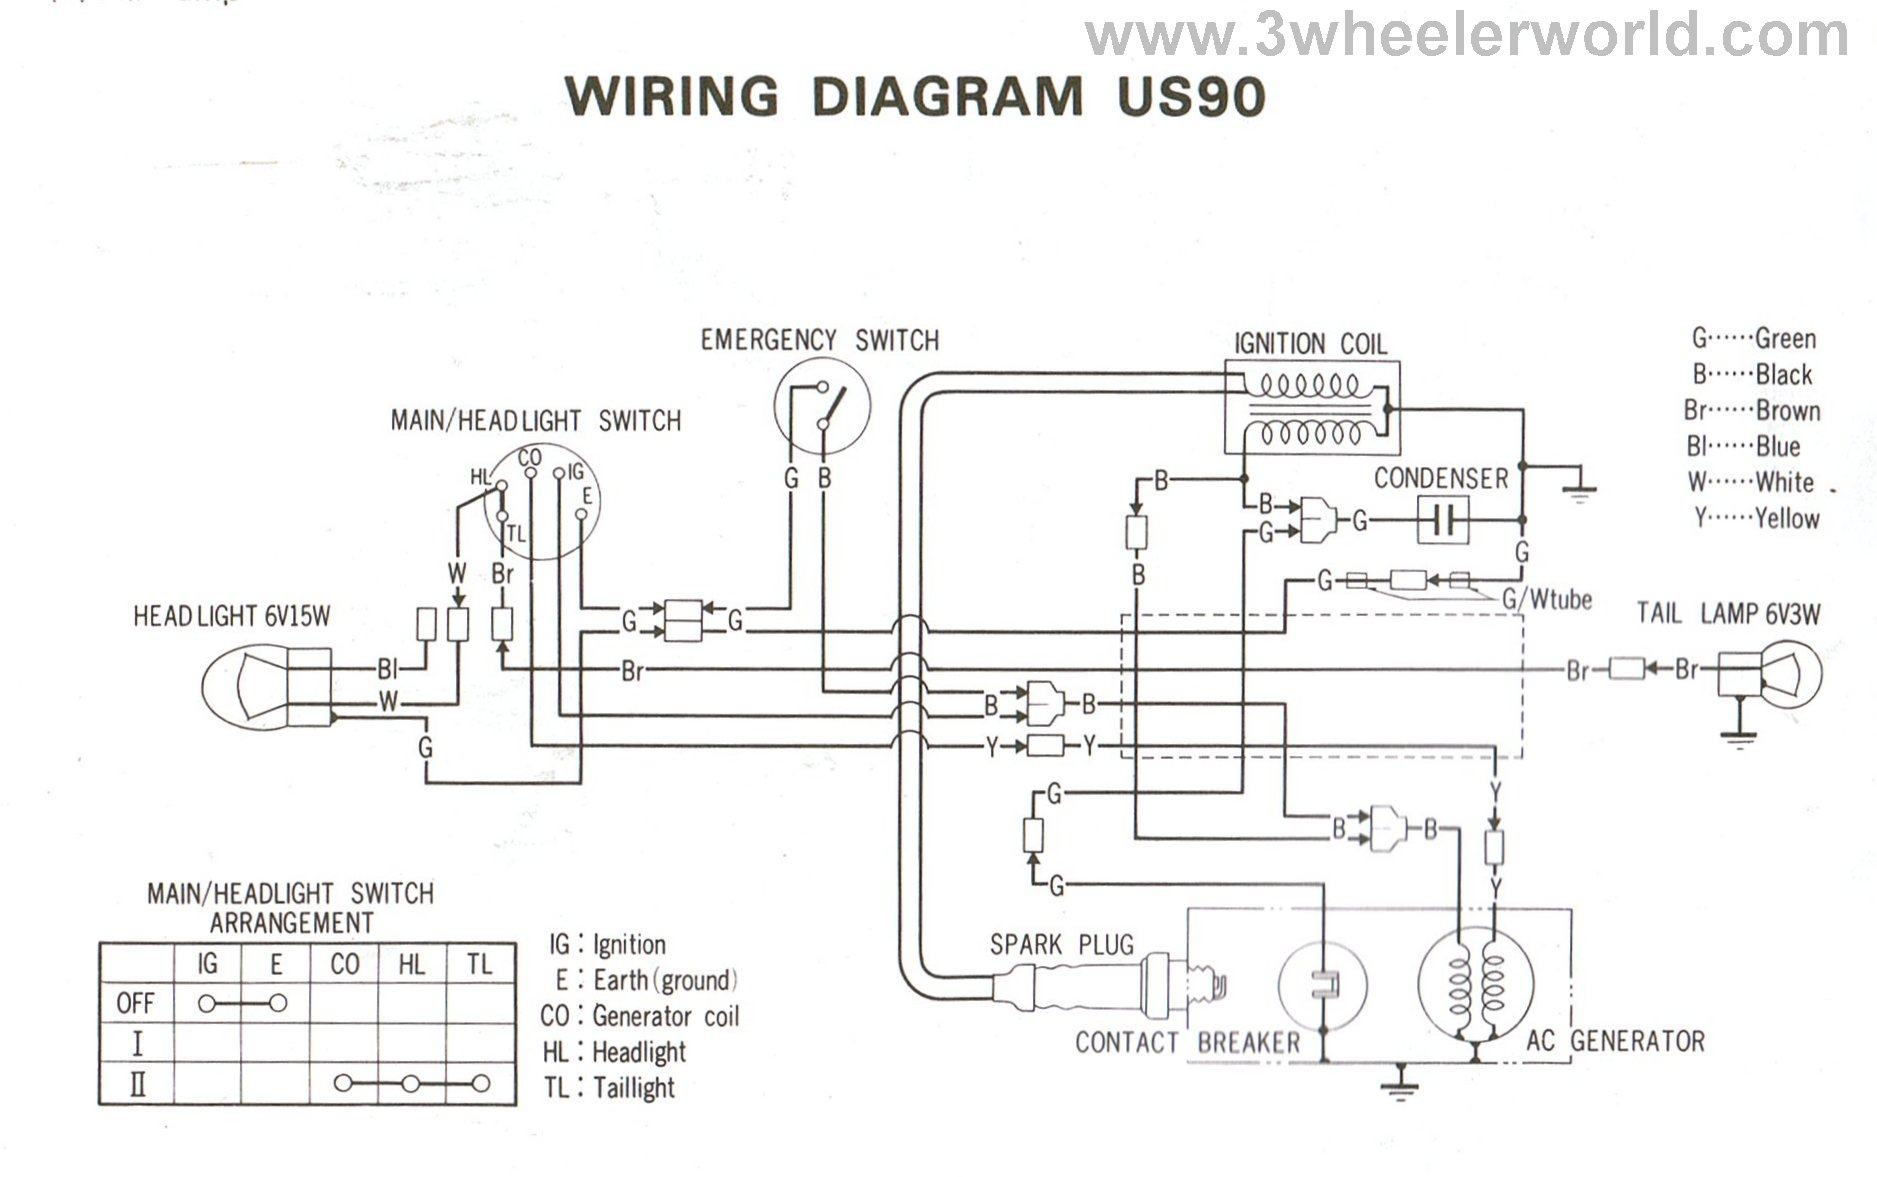 US90HM 3 wheeler world tech help honda wiring diagrams 2003 polaris predator 90 wiring diagram at virtualis.co